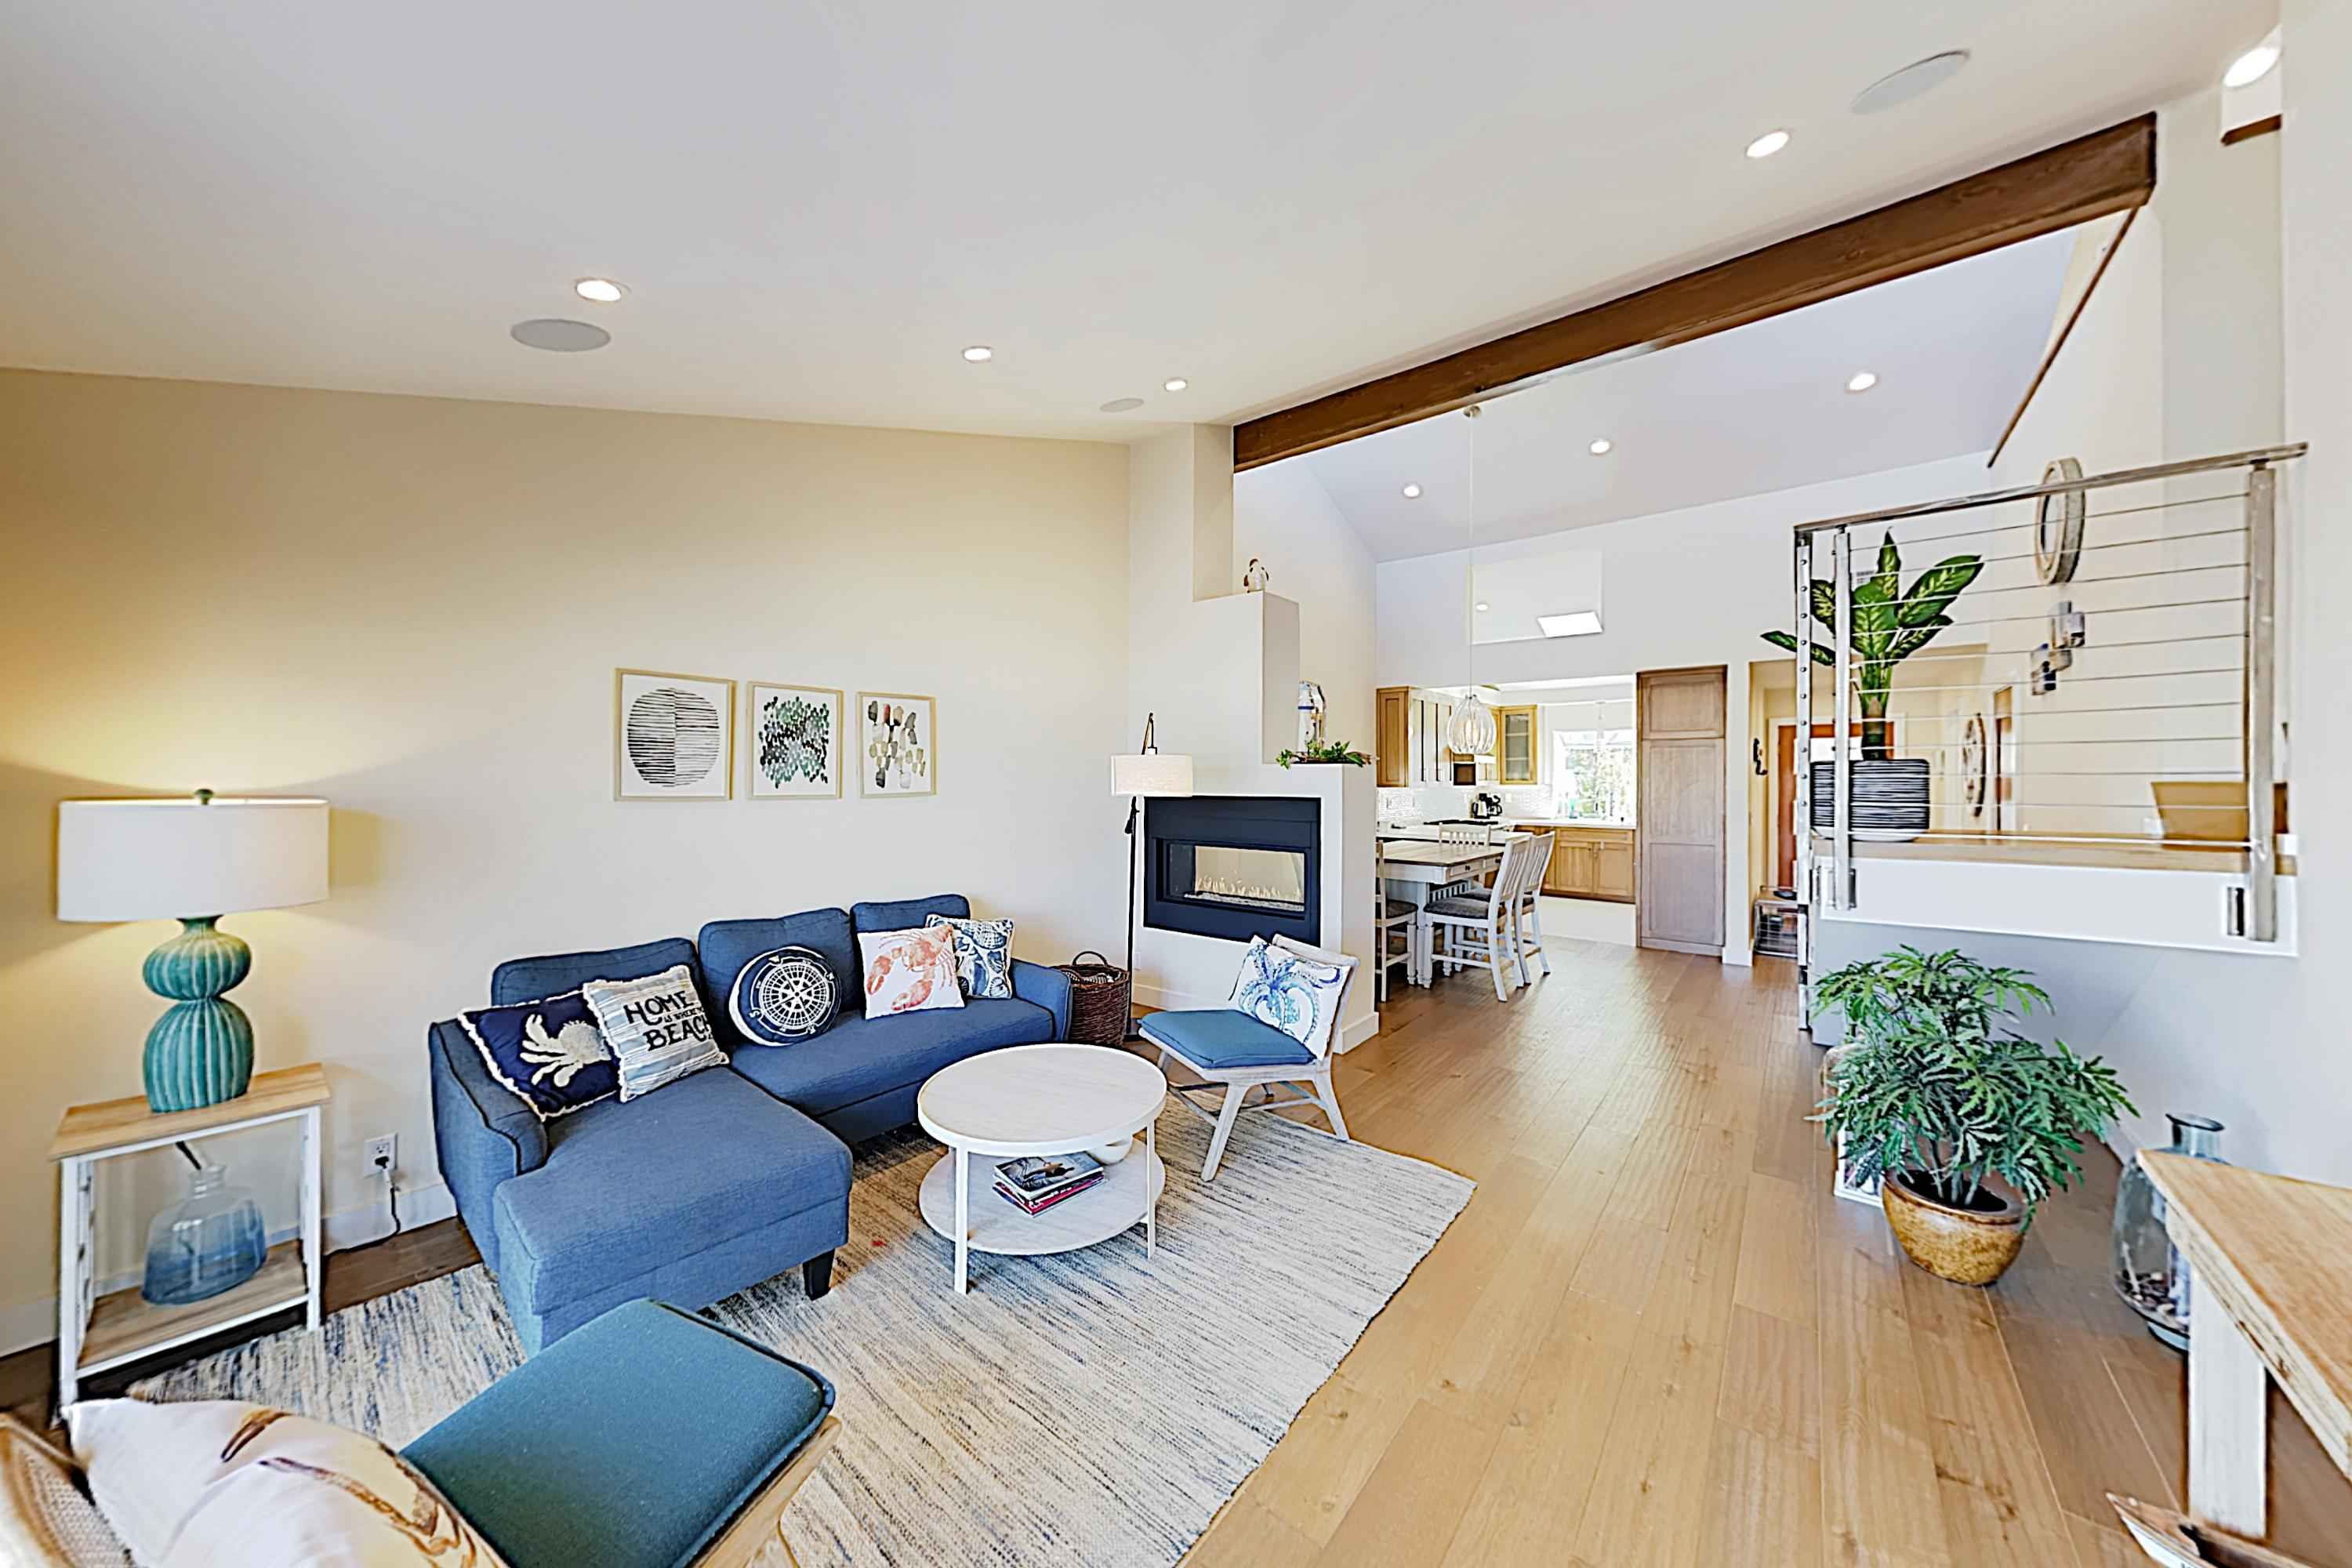 The bright interior features oak floors and a double-sided gas fireplace.